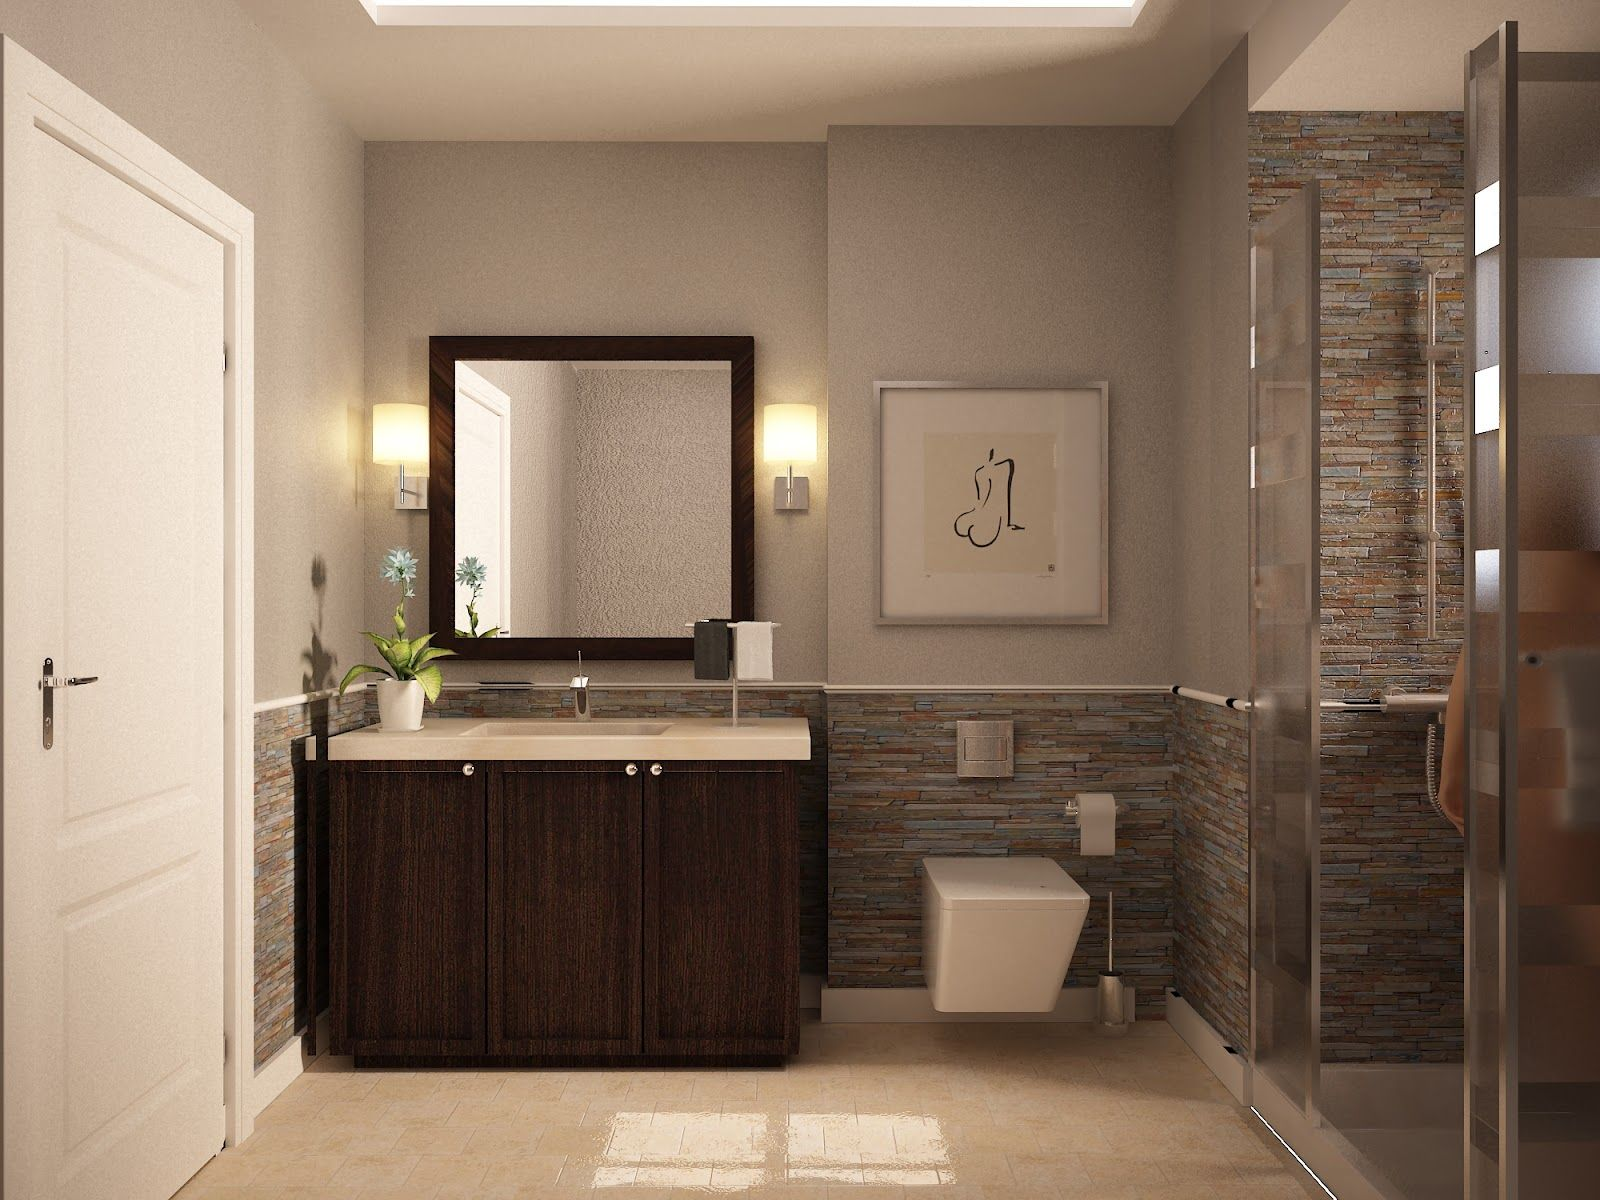 13 best bathroom ideas images on Pinterest | Bathroom ideas, Wall ...